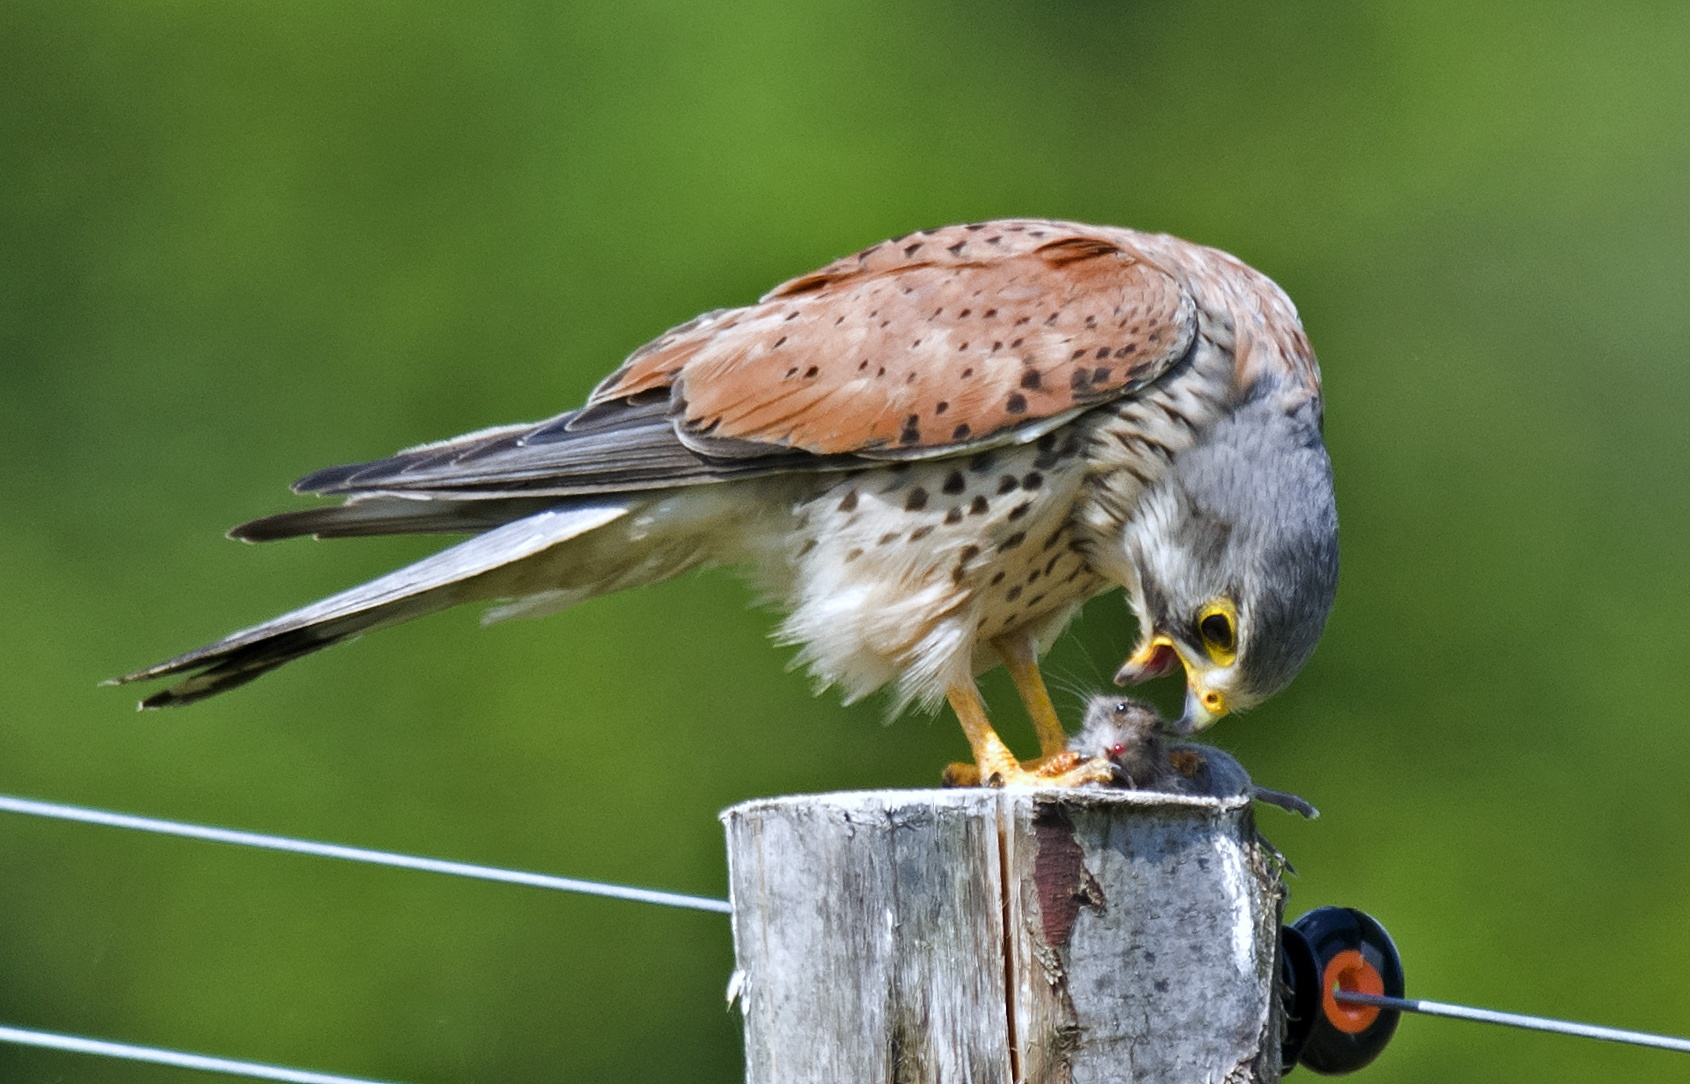 Kestrel with prey by mikeb3